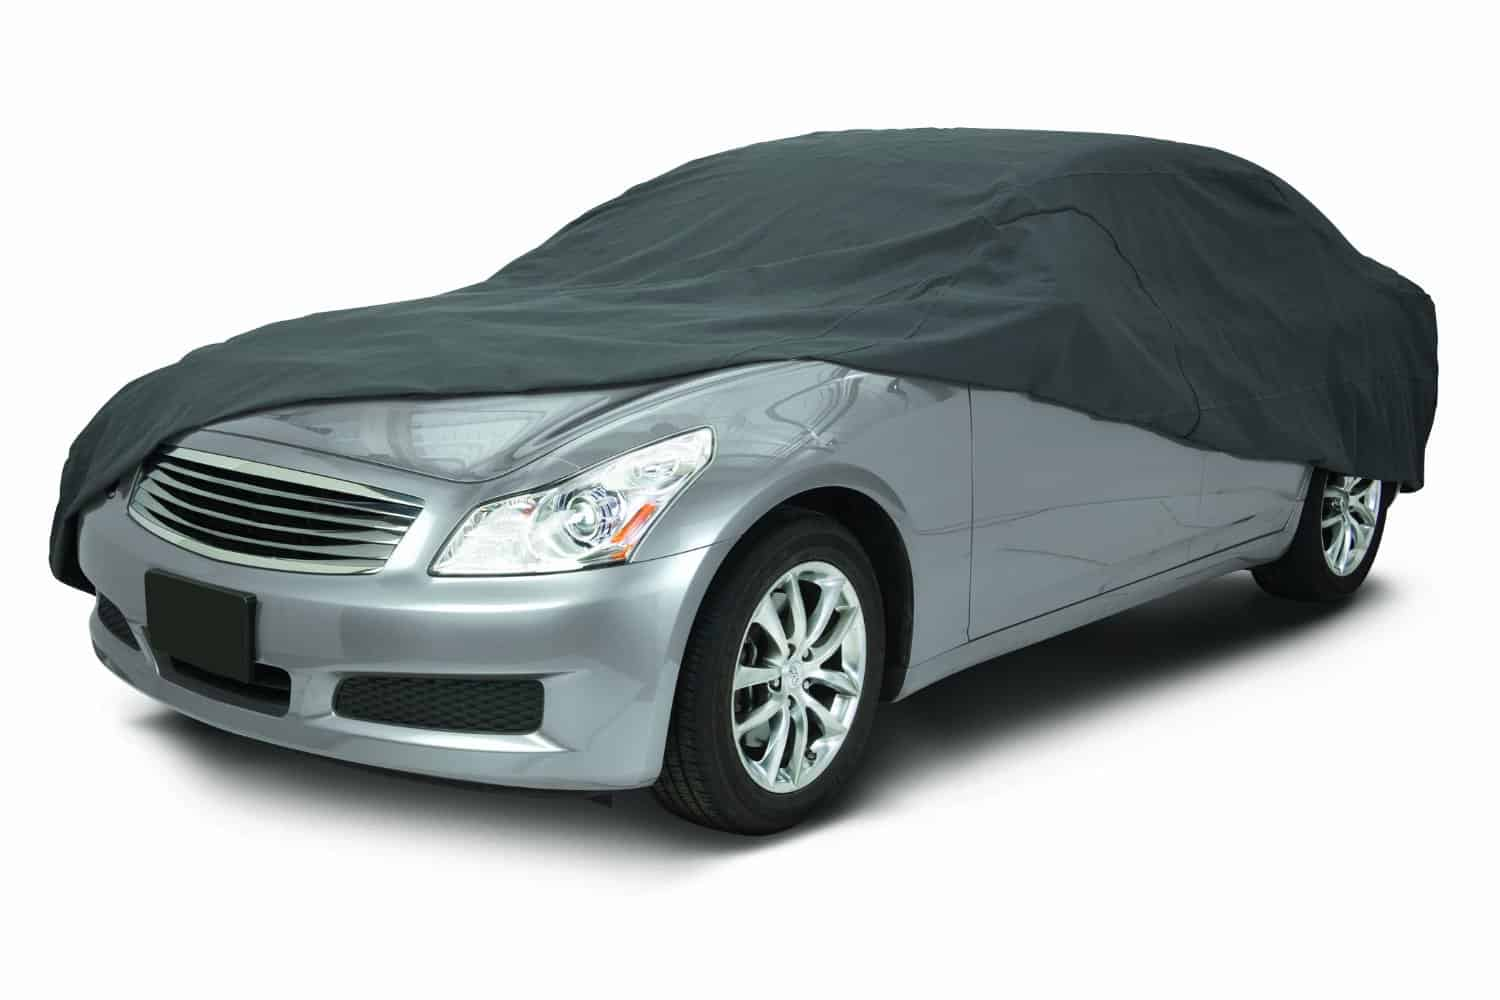 best-car-covers-for-outdoor-use-7